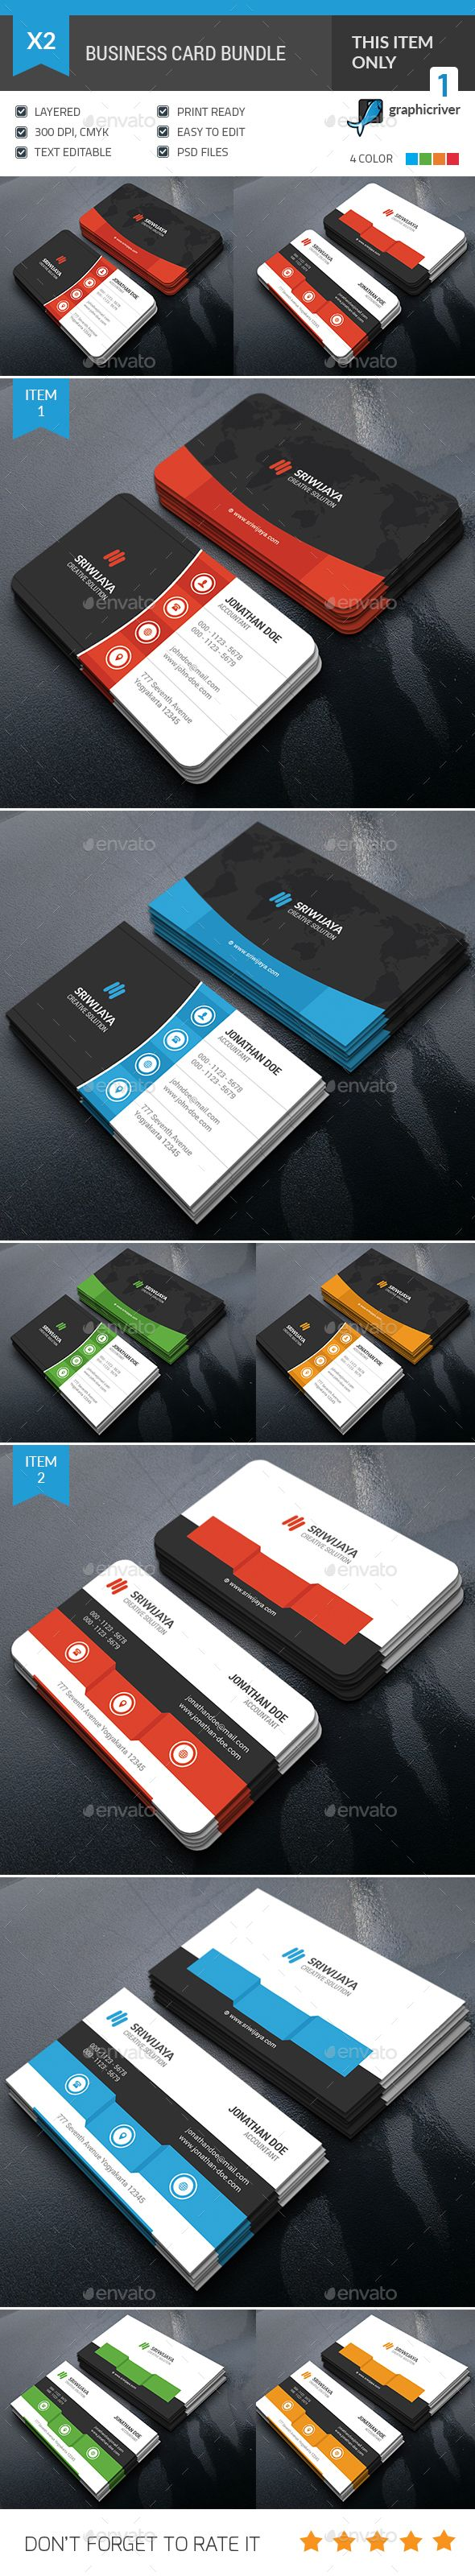 Business card bundle business cards business and template business card bundle template psd design download httpgraphicriver flashek Choice Image